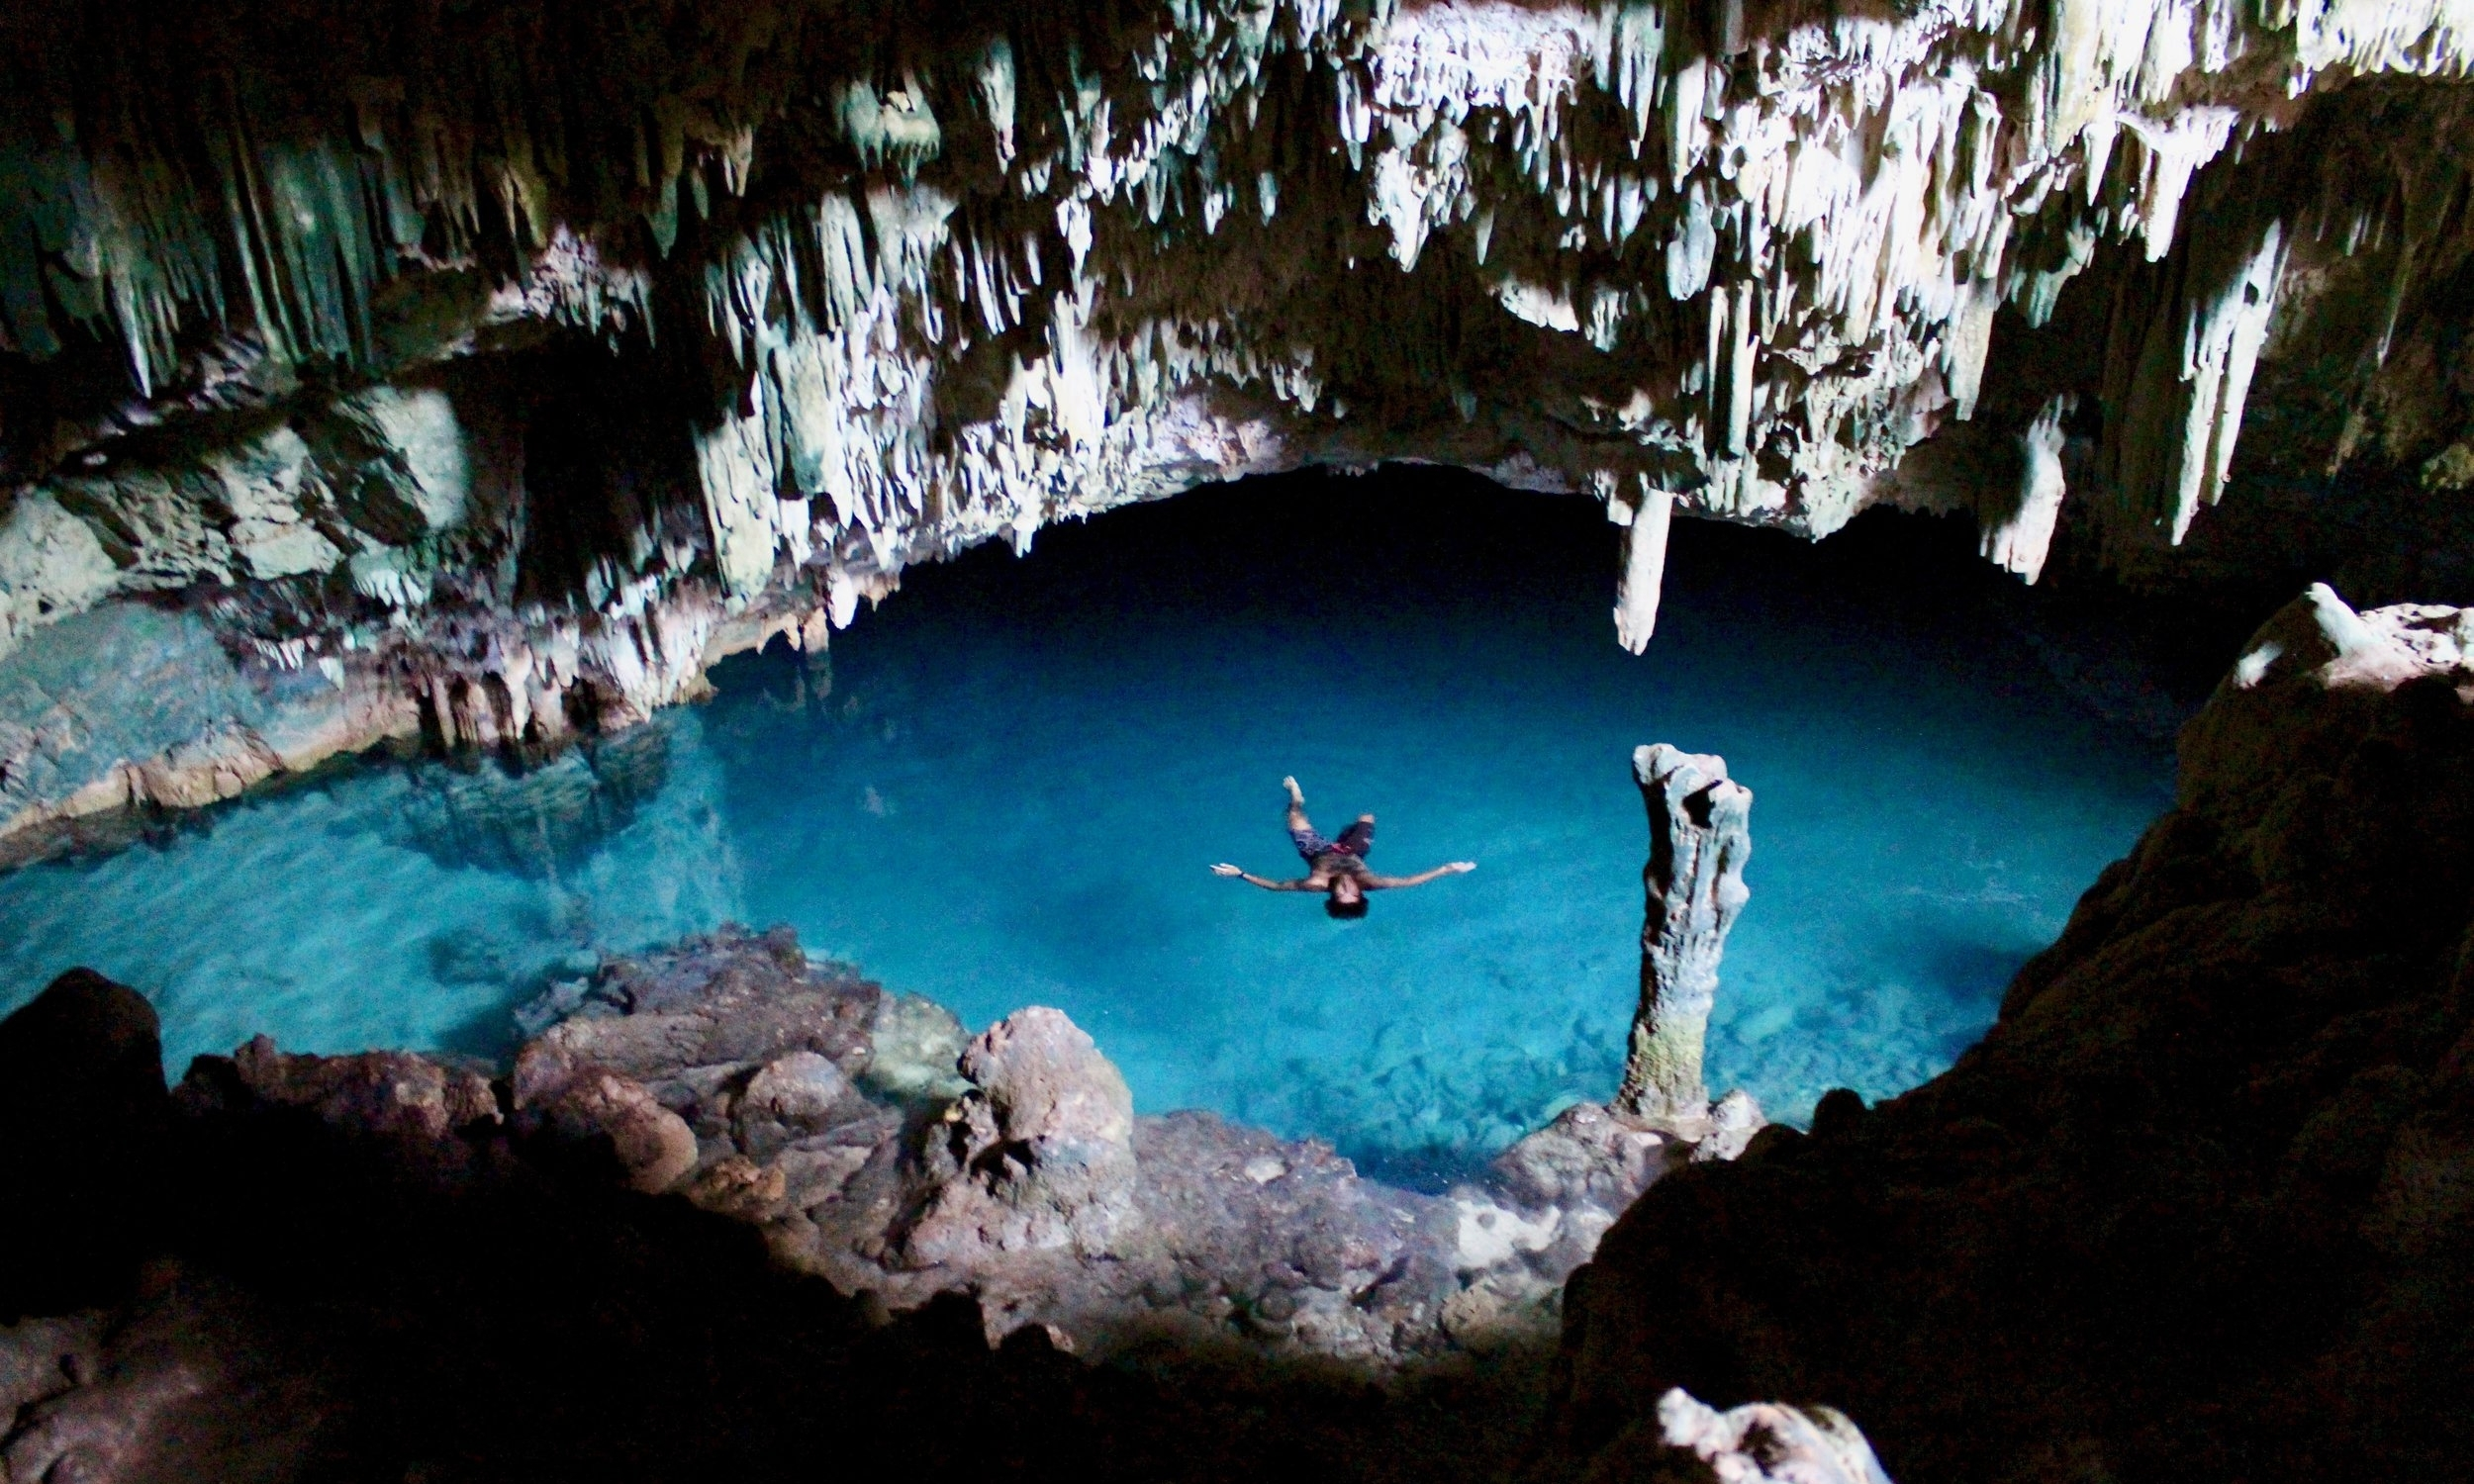 Rangko Cave (Goa Rangko) - Don't leave Labuan Bajo without exploring Rangko Cave and its secret swimming hole filled with crystal clear water. The trip is about 1h by car from Labuan Bajo. You can get to the beach of Rangko Cave from Rangko Village by local boat. The trip takes about 10 minutes. Or take a small boat ride from Labuan Bajo Harbour to reach there directly. Be careful, getting in and out can be very slippery. The best time to visit is during the low tide. Check out the tide times before.